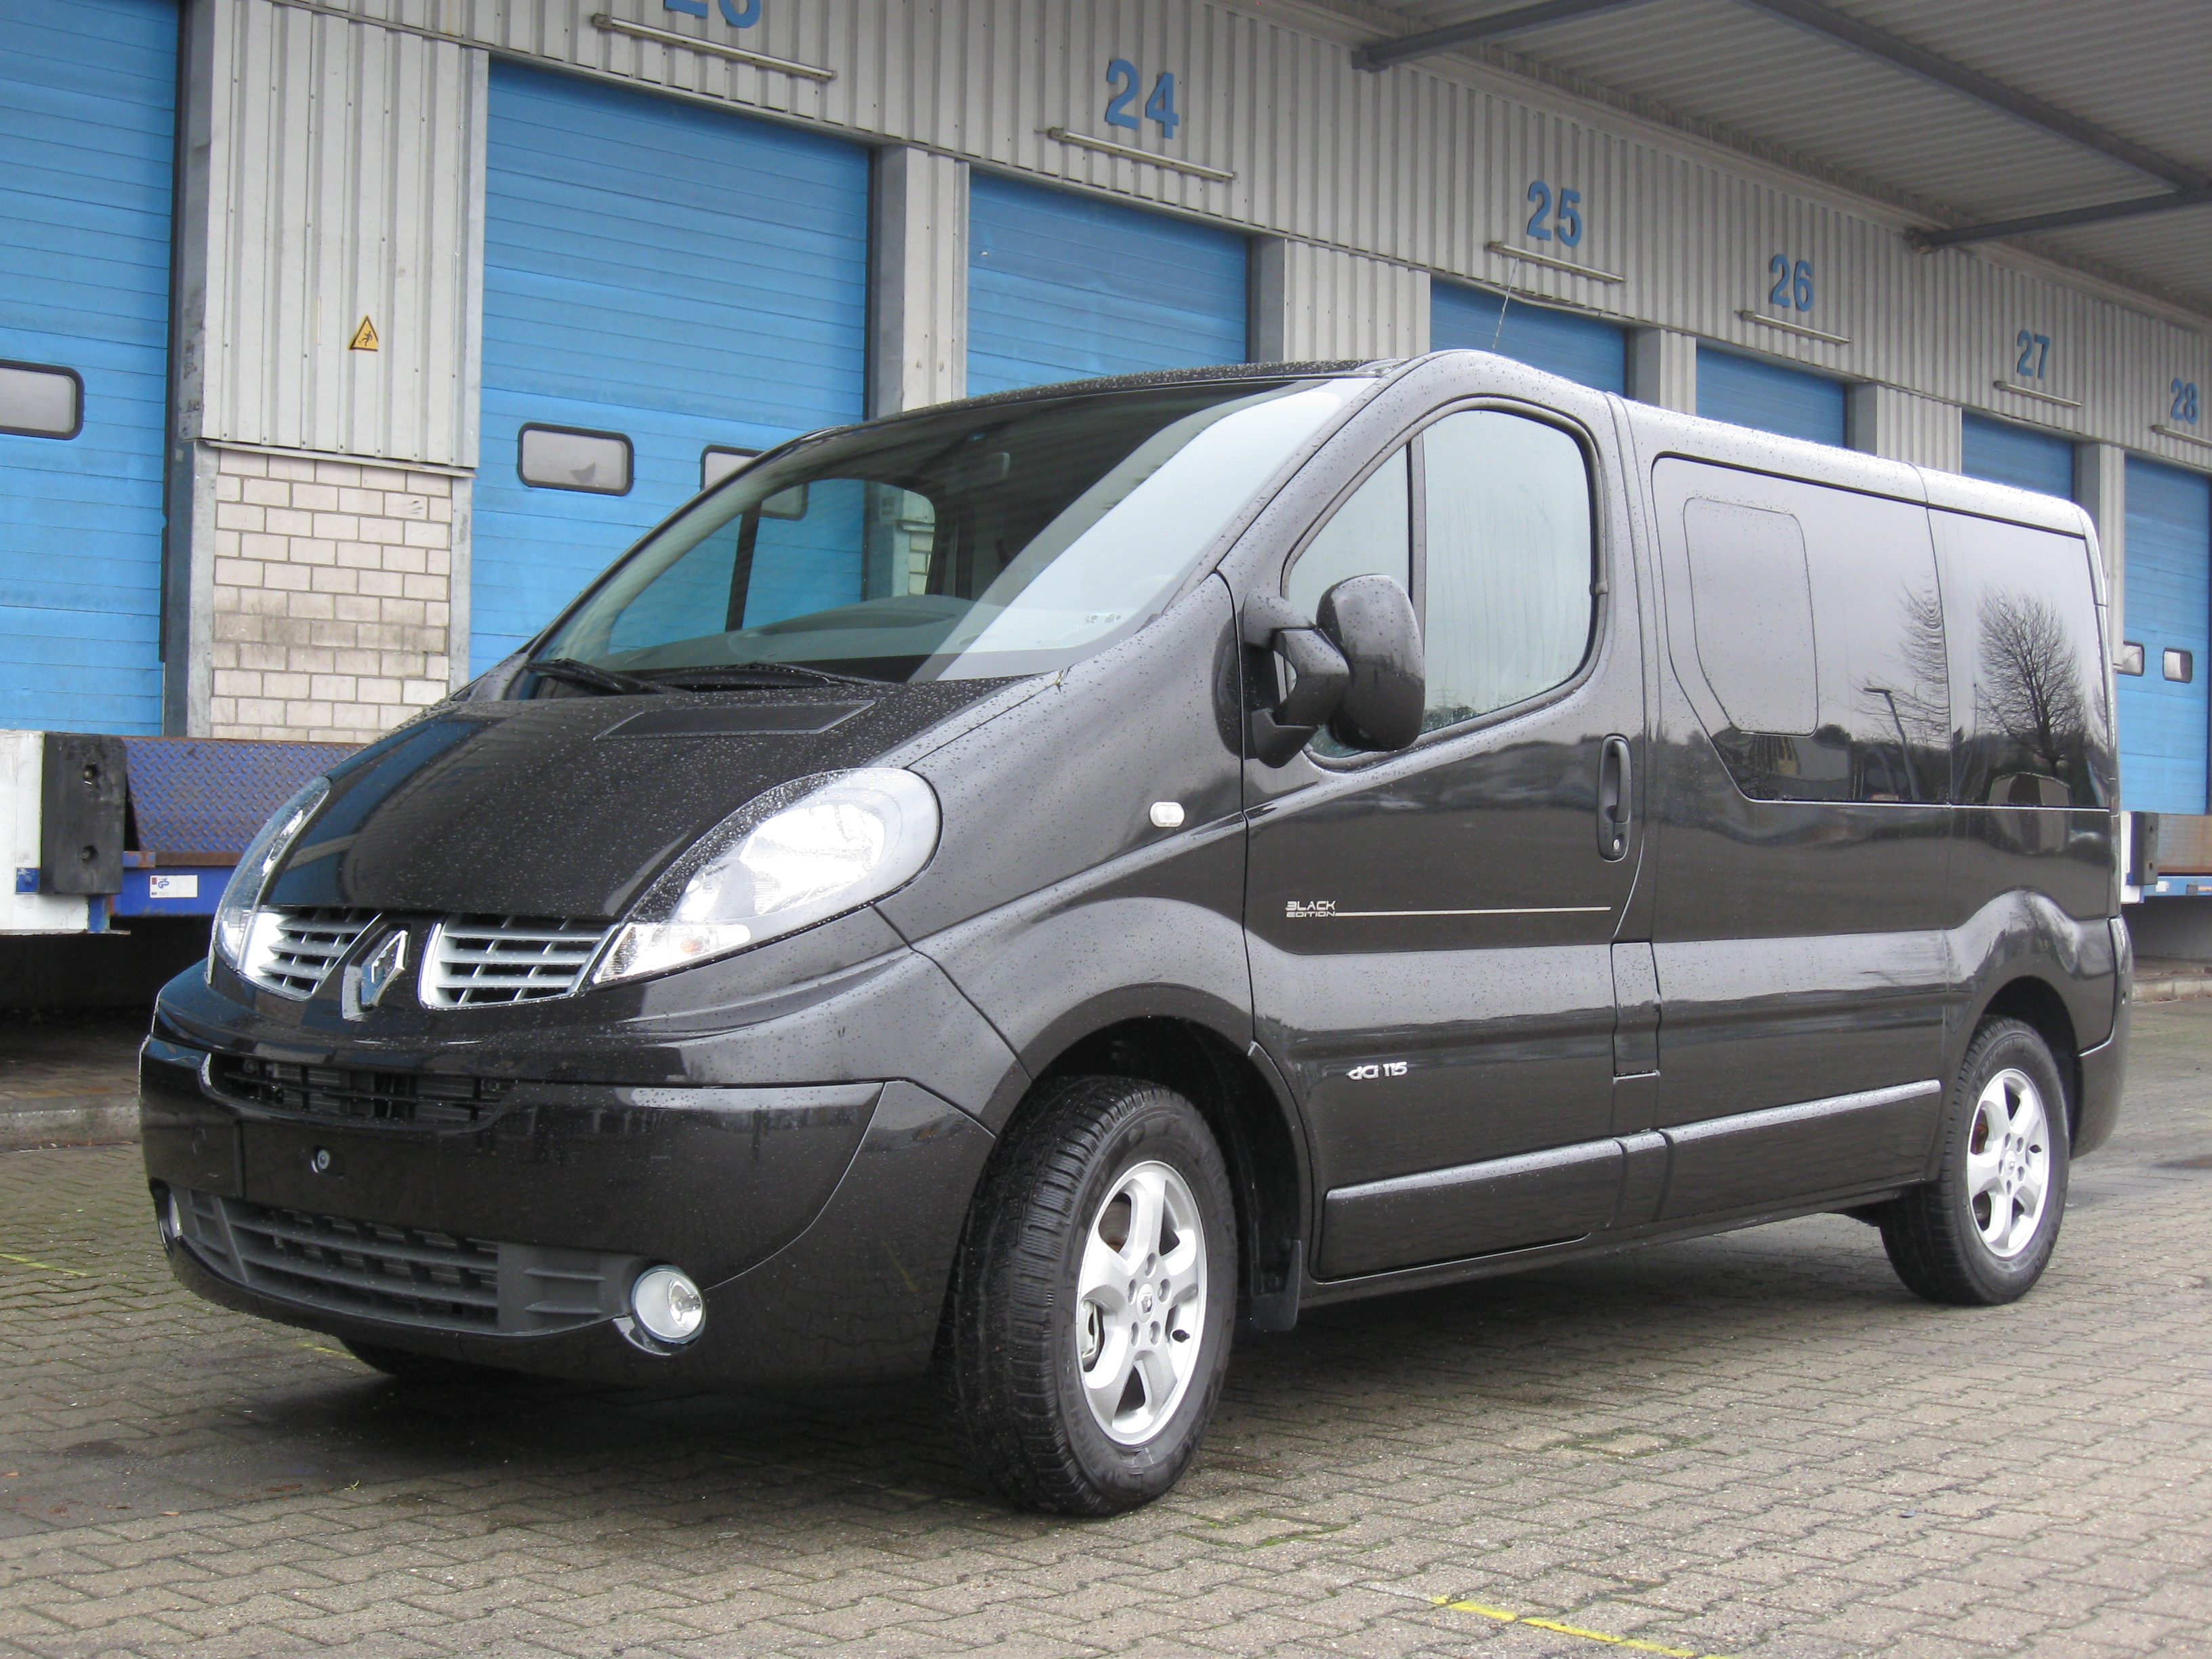 2011 renault trafic photos informations articles. Black Bedroom Furniture Sets. Home Design Ideas